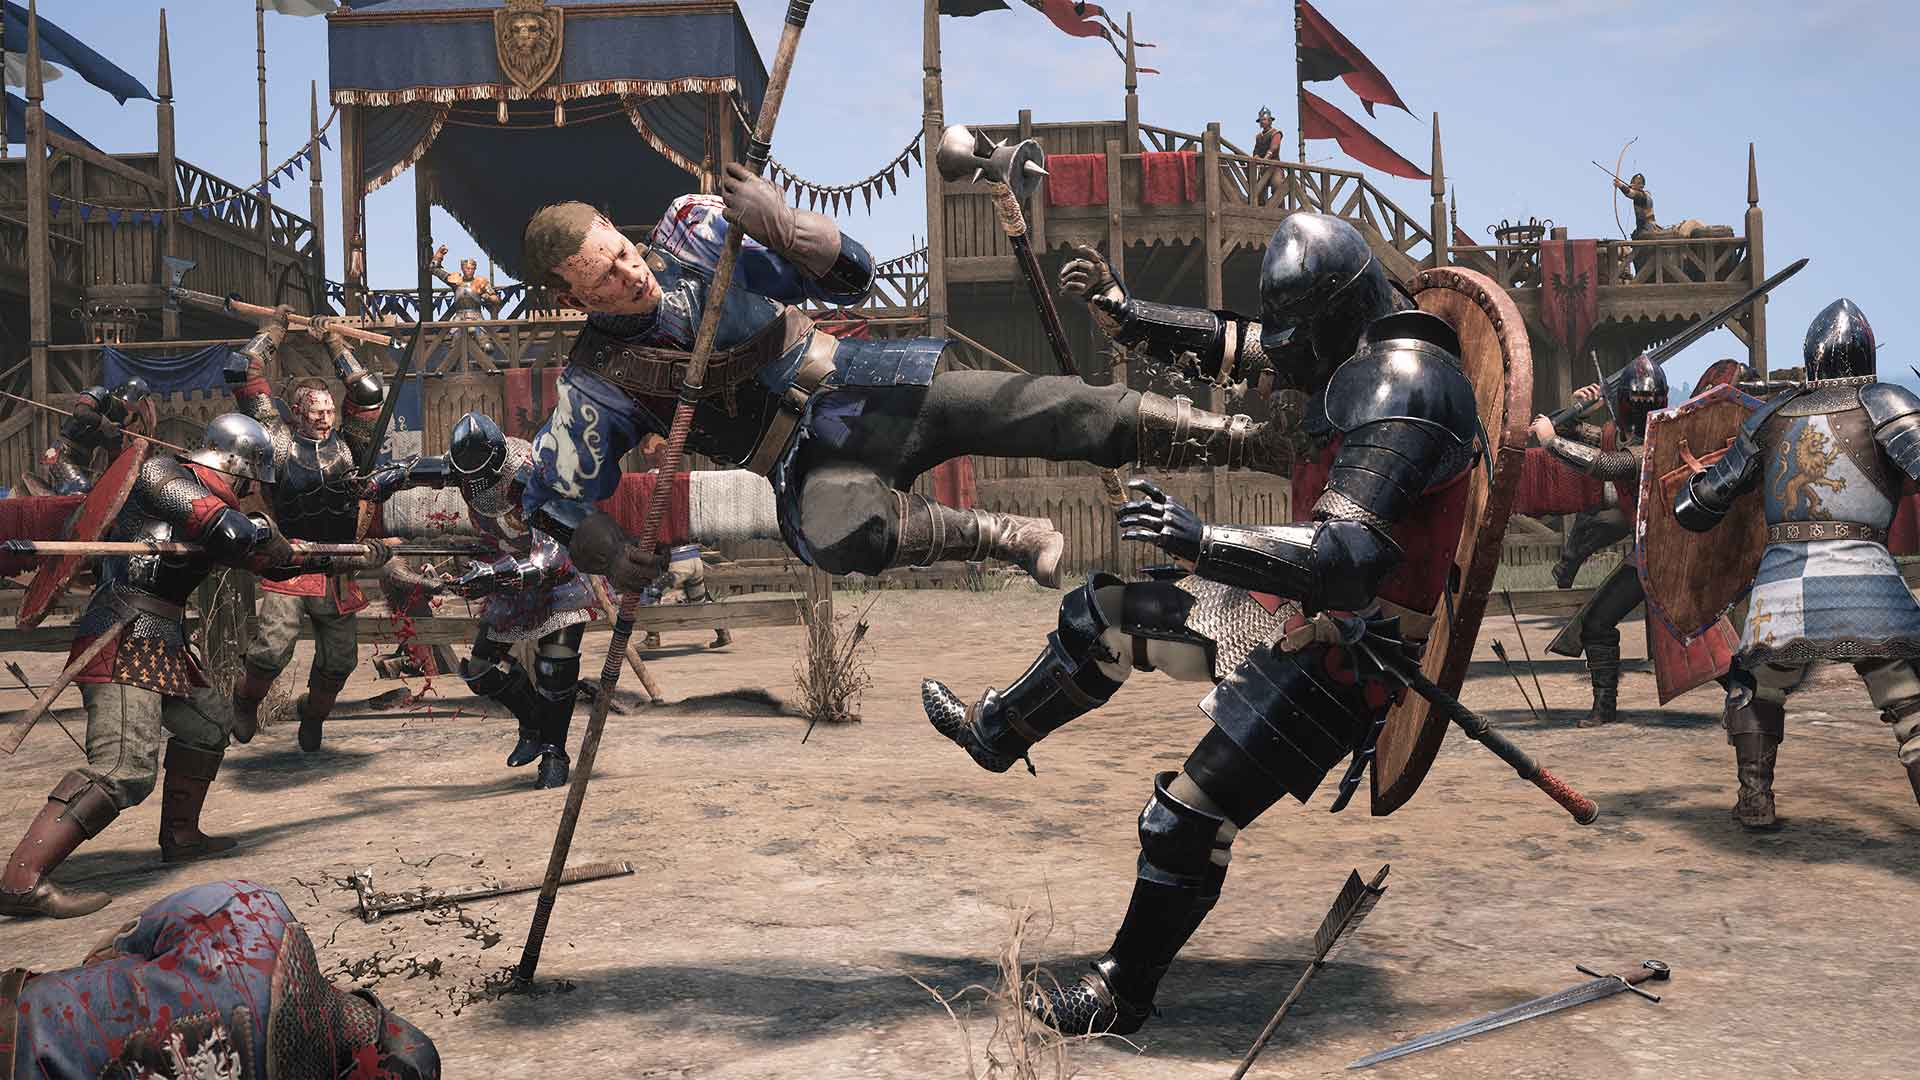 A cinematic shot from Chivalry 2, a blue-armoured warrior kicking a knight in the chest.